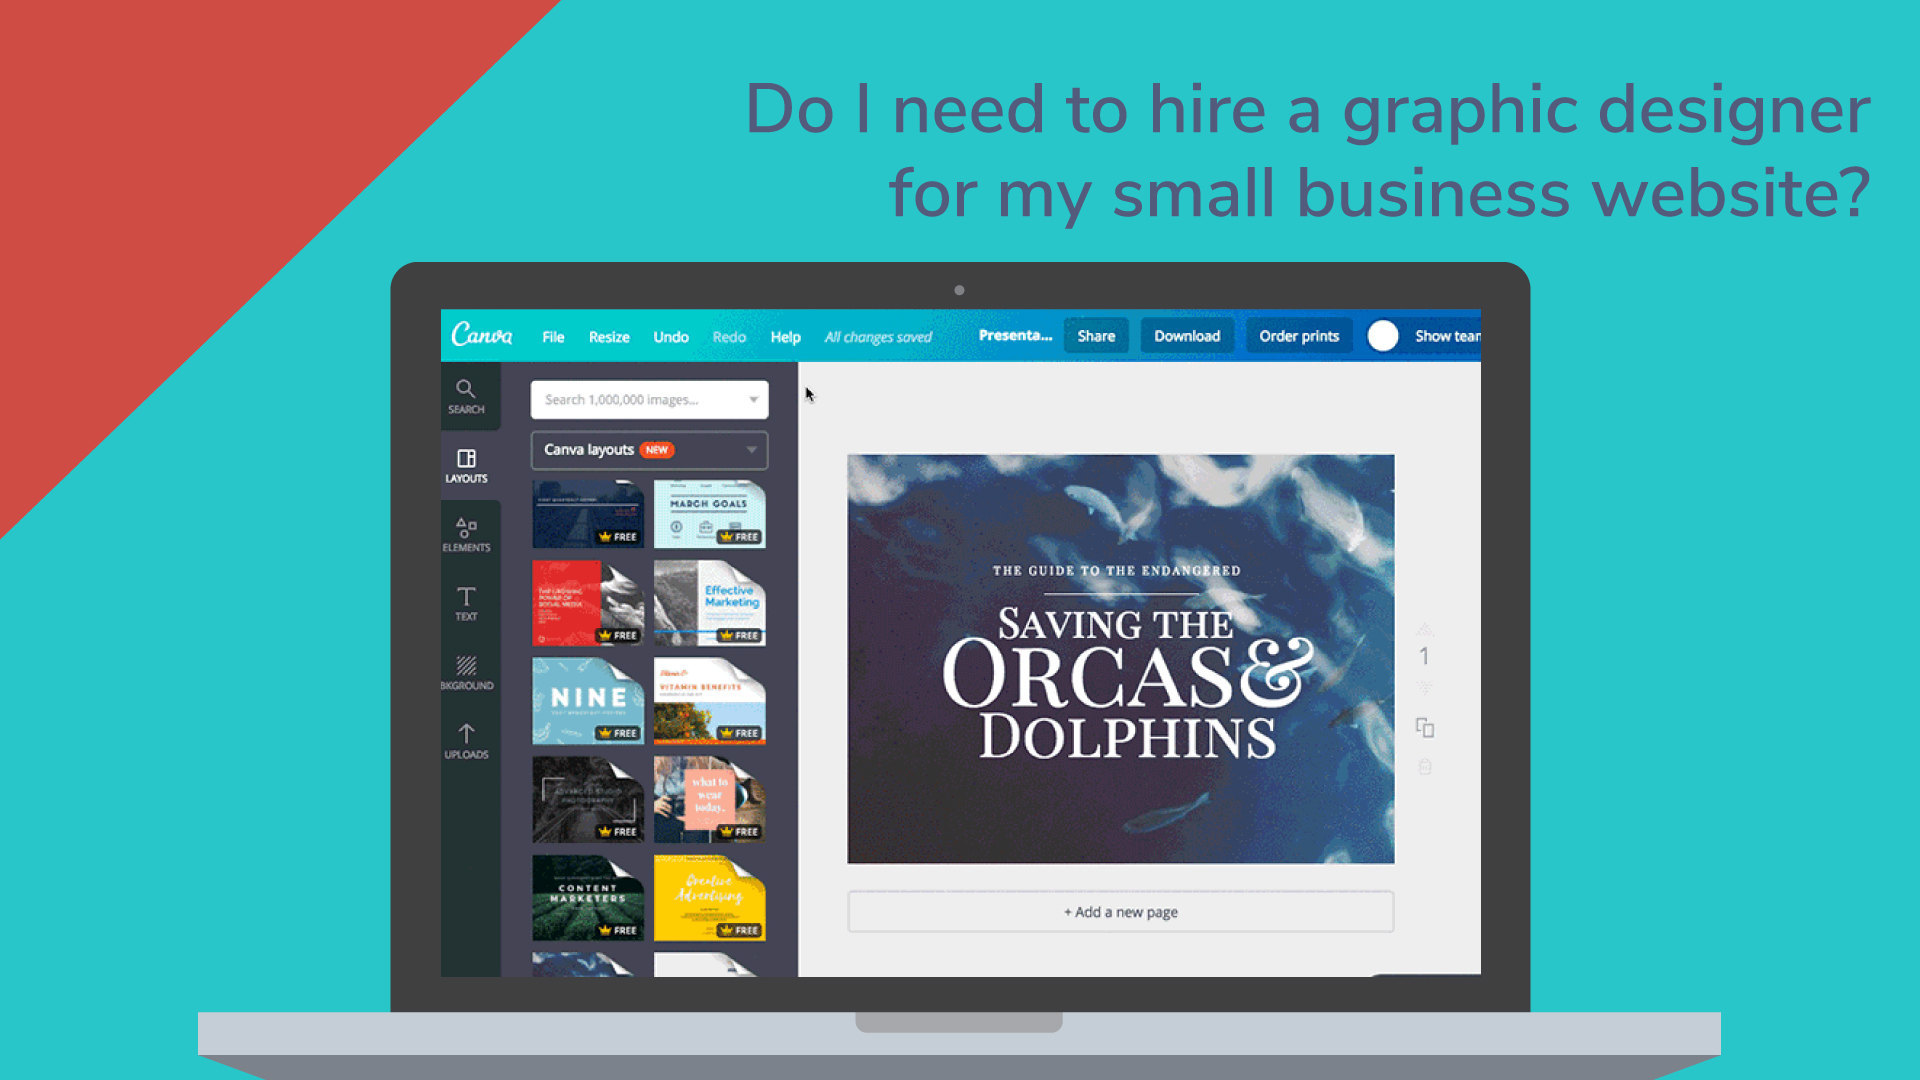 Do i need to hire a graphic designer for my small business website